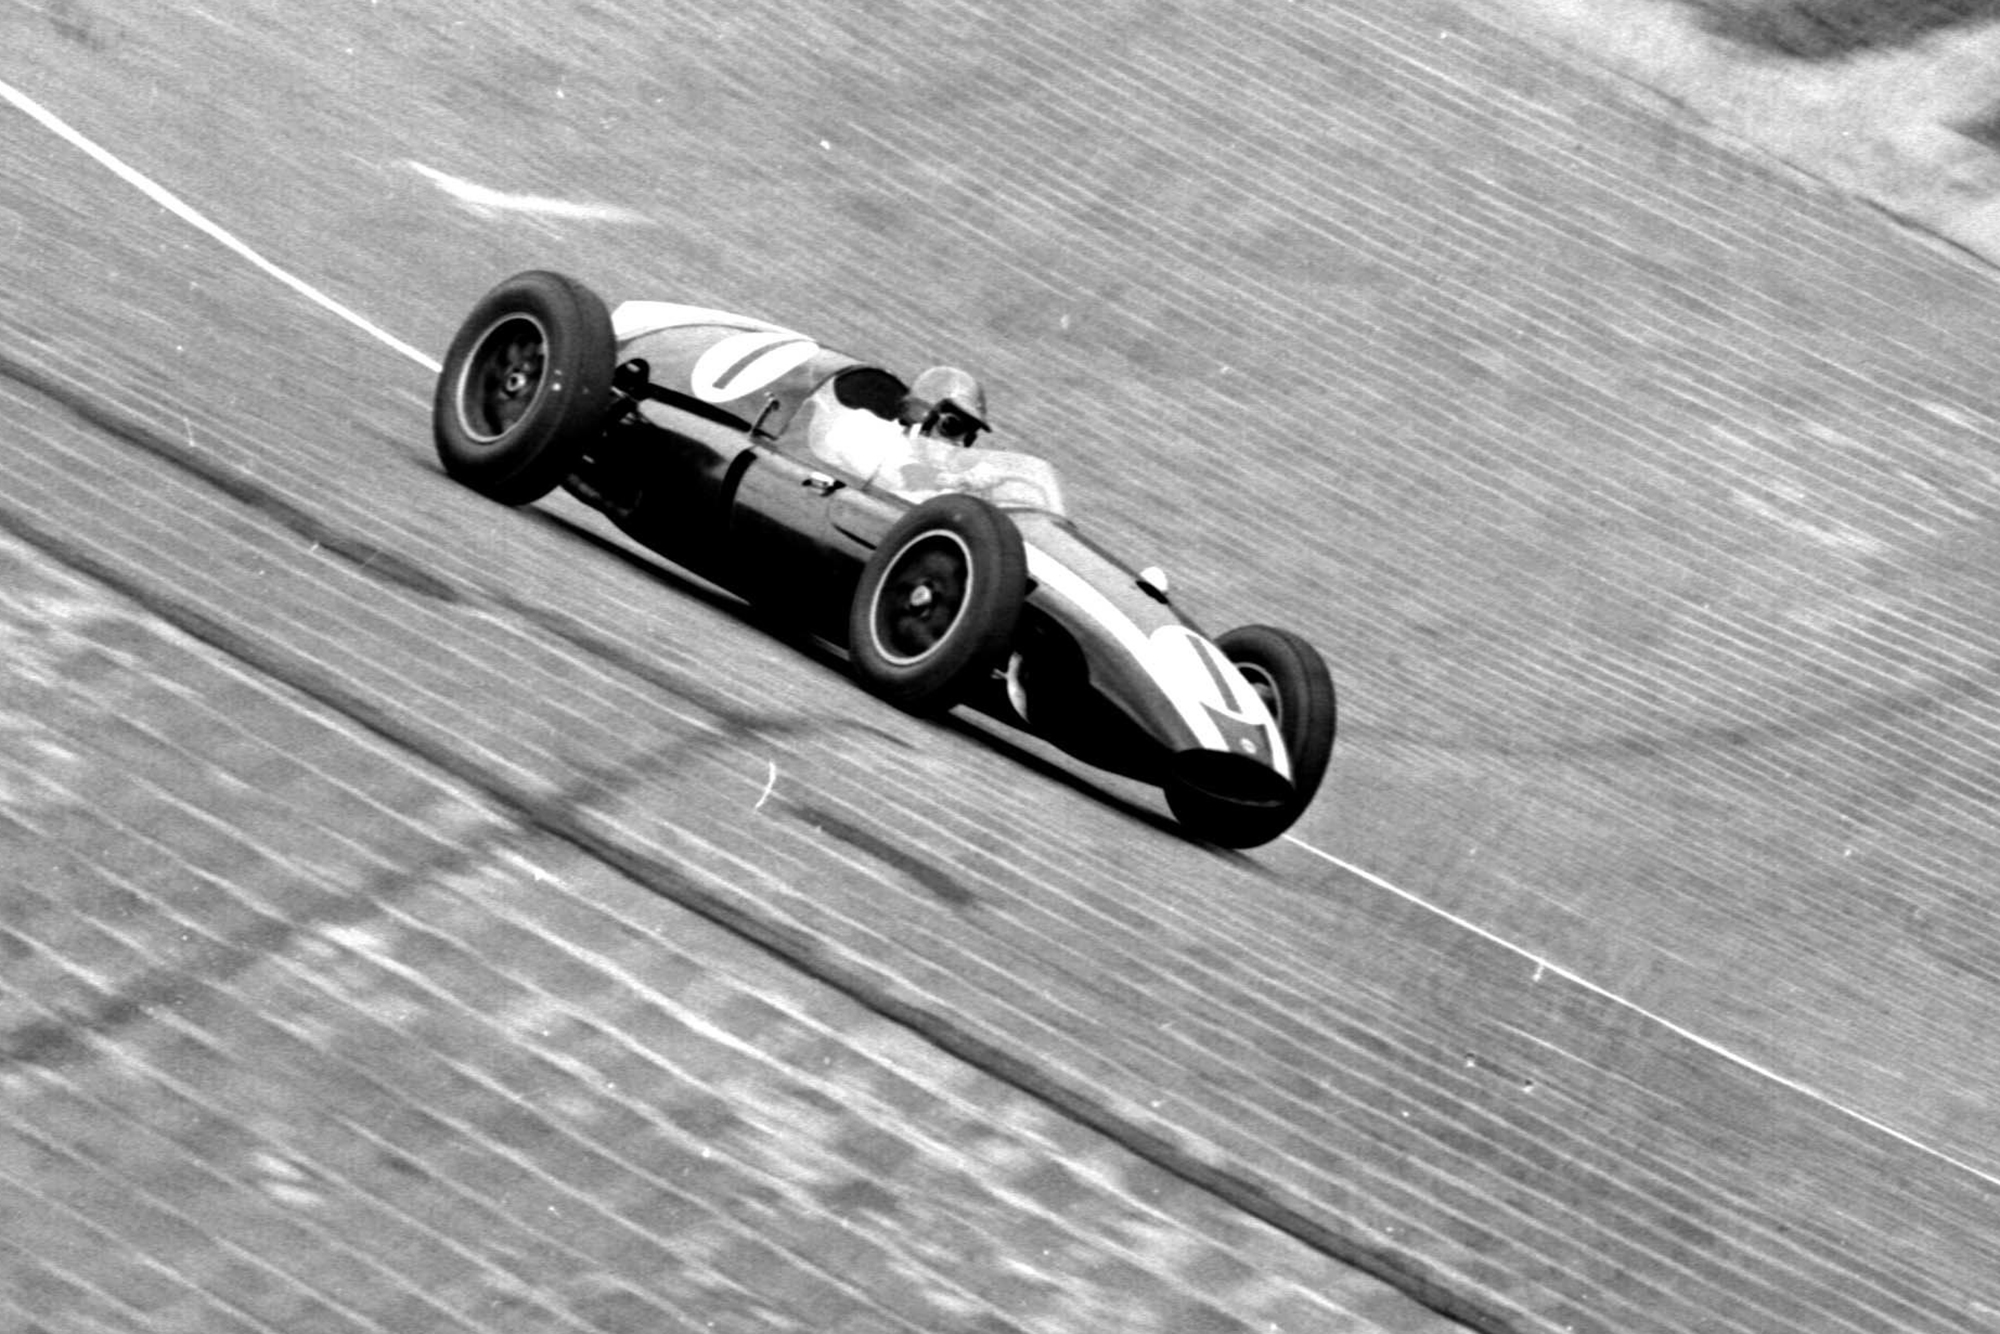 Jack Brabham pushes his Cooper T51 Climax) around the banked North Turn.